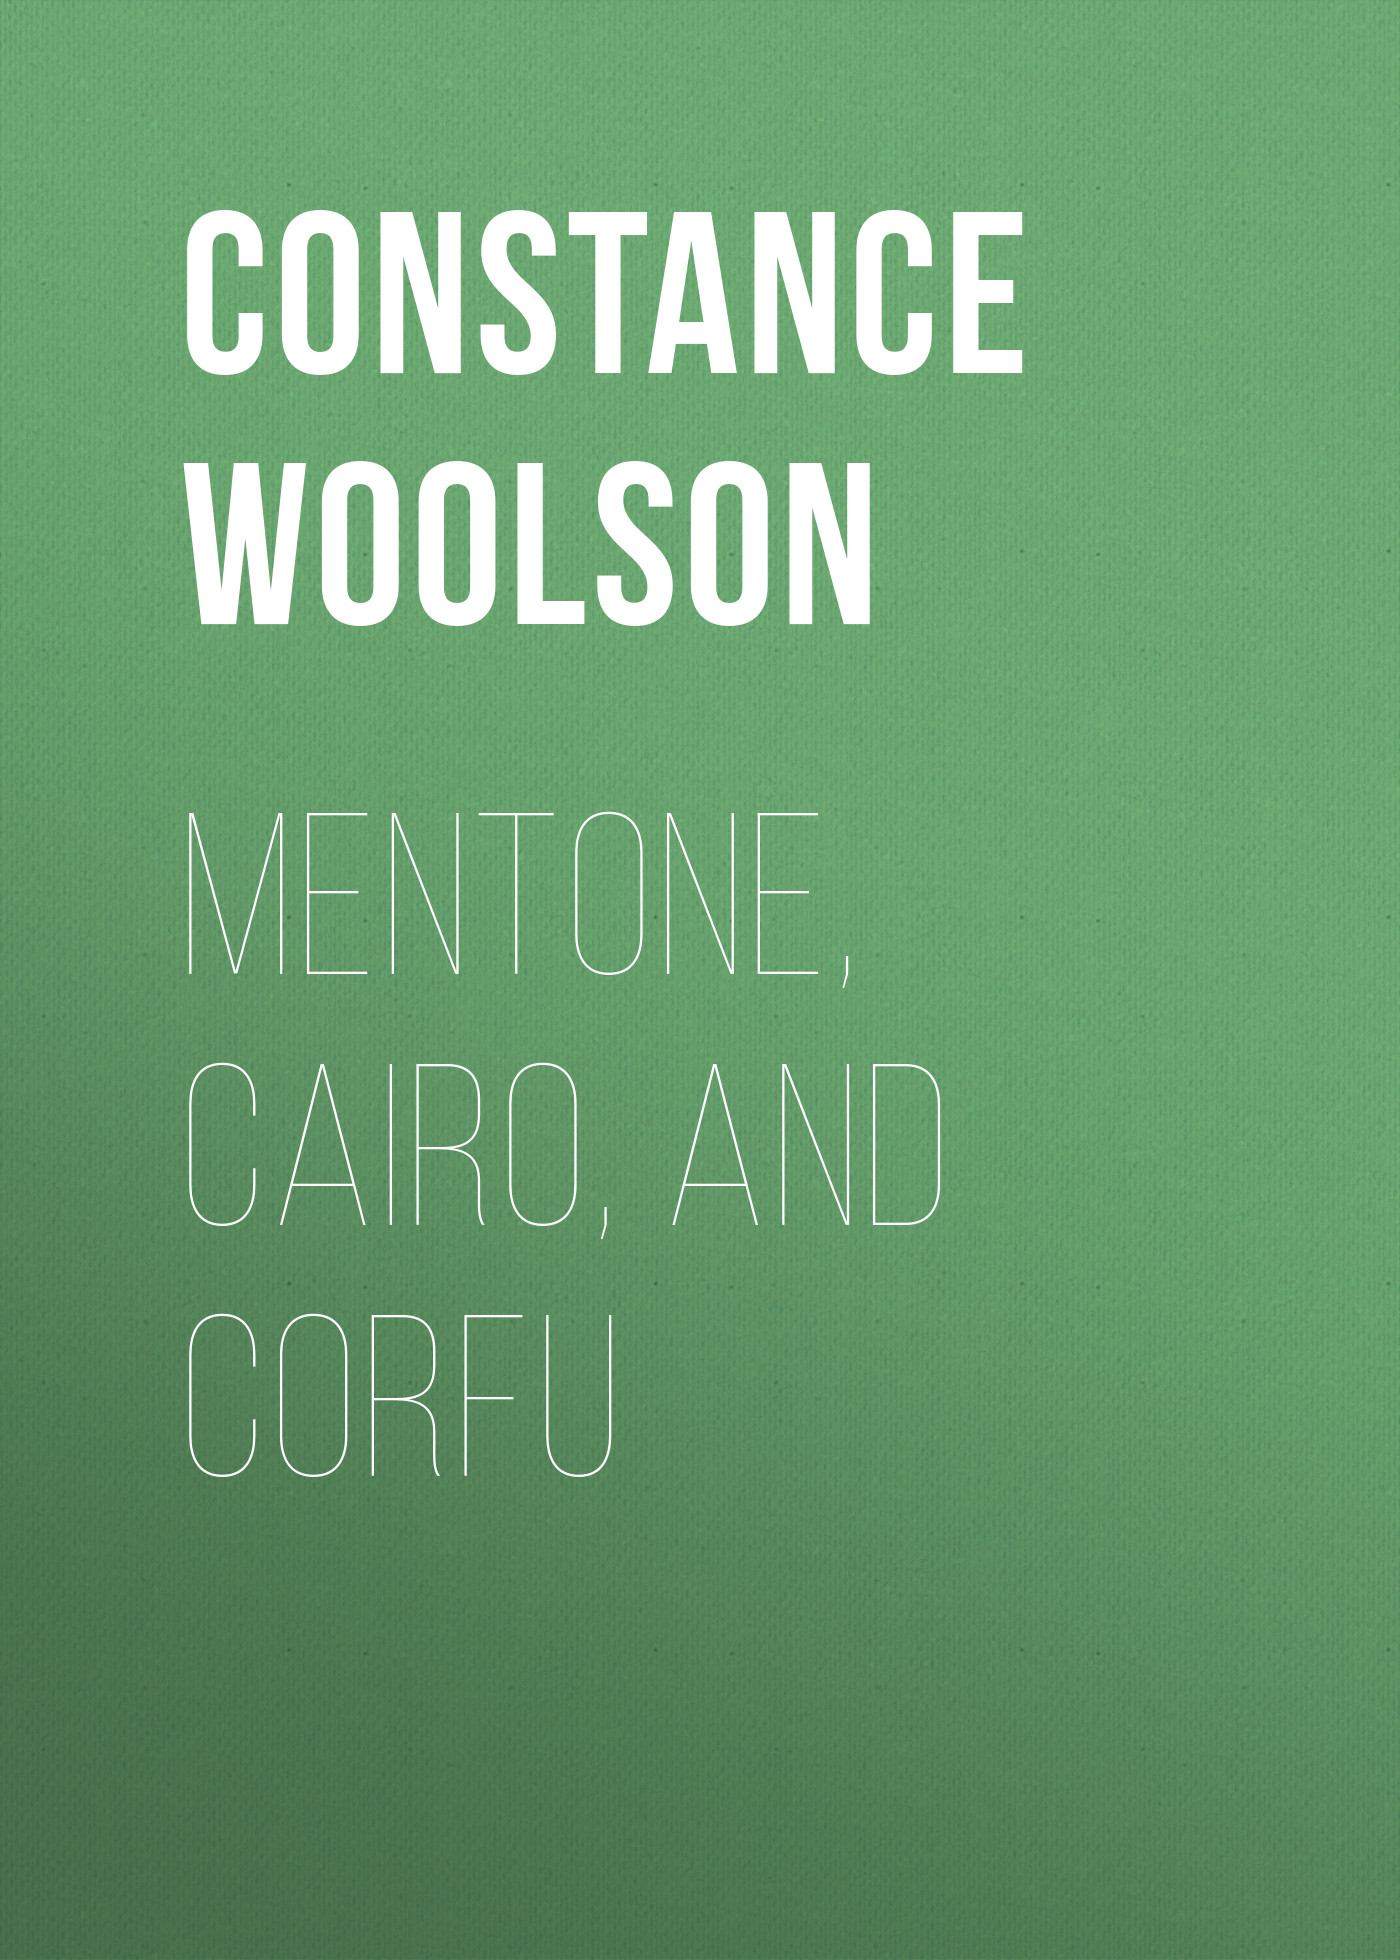 Woolson Constance Fenimore Mentone, Cairo, and Corfu woolson constance fenimore horace chase